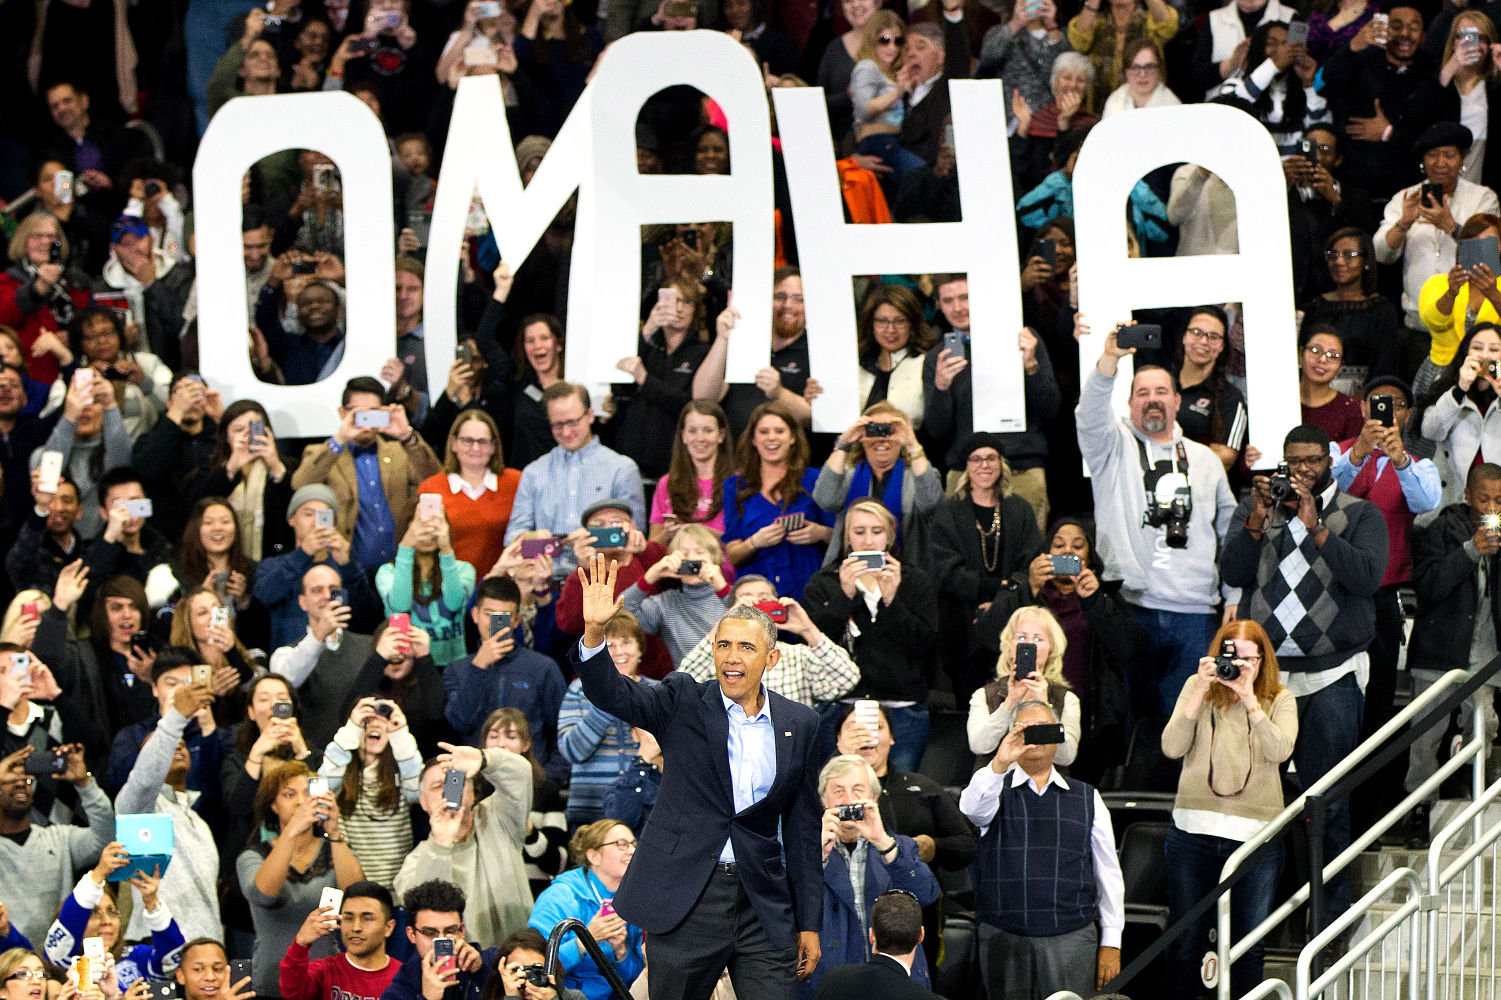 Obama Receives Standing Ovation from 1,400-Plus Crowd in Seattle